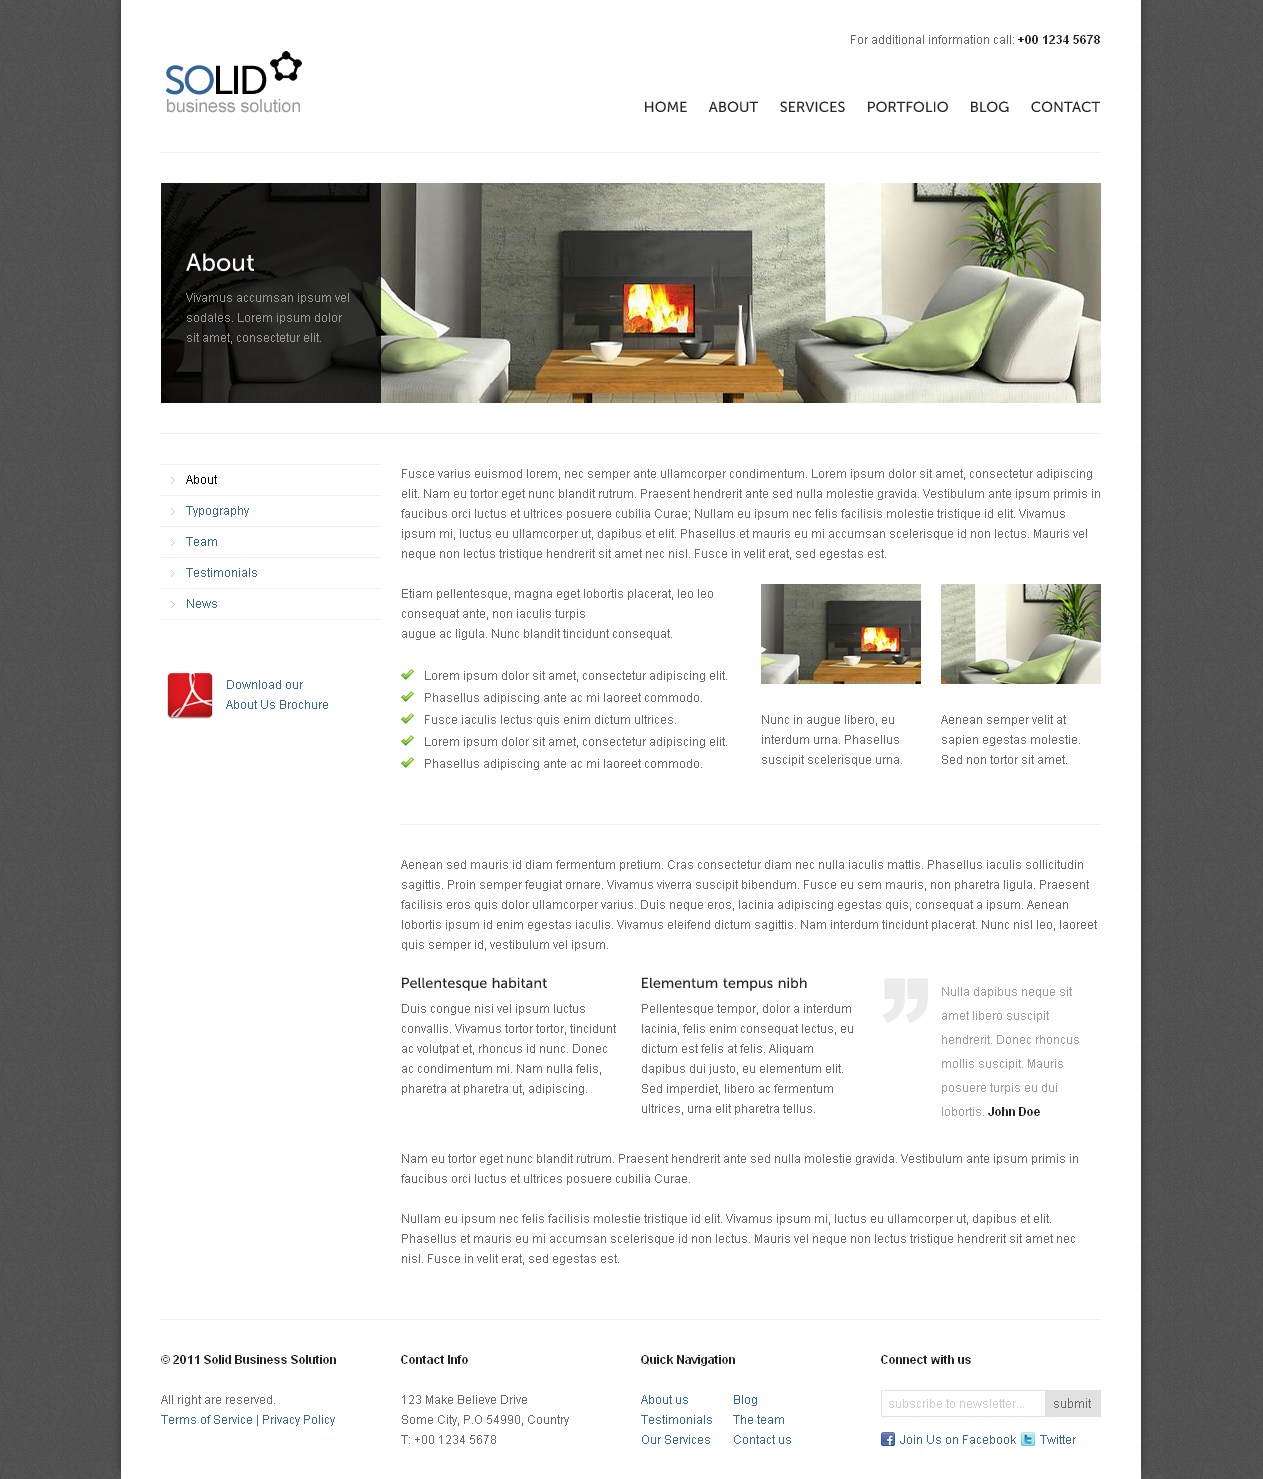 Solid WP - Corporate / Business WordPress Theme